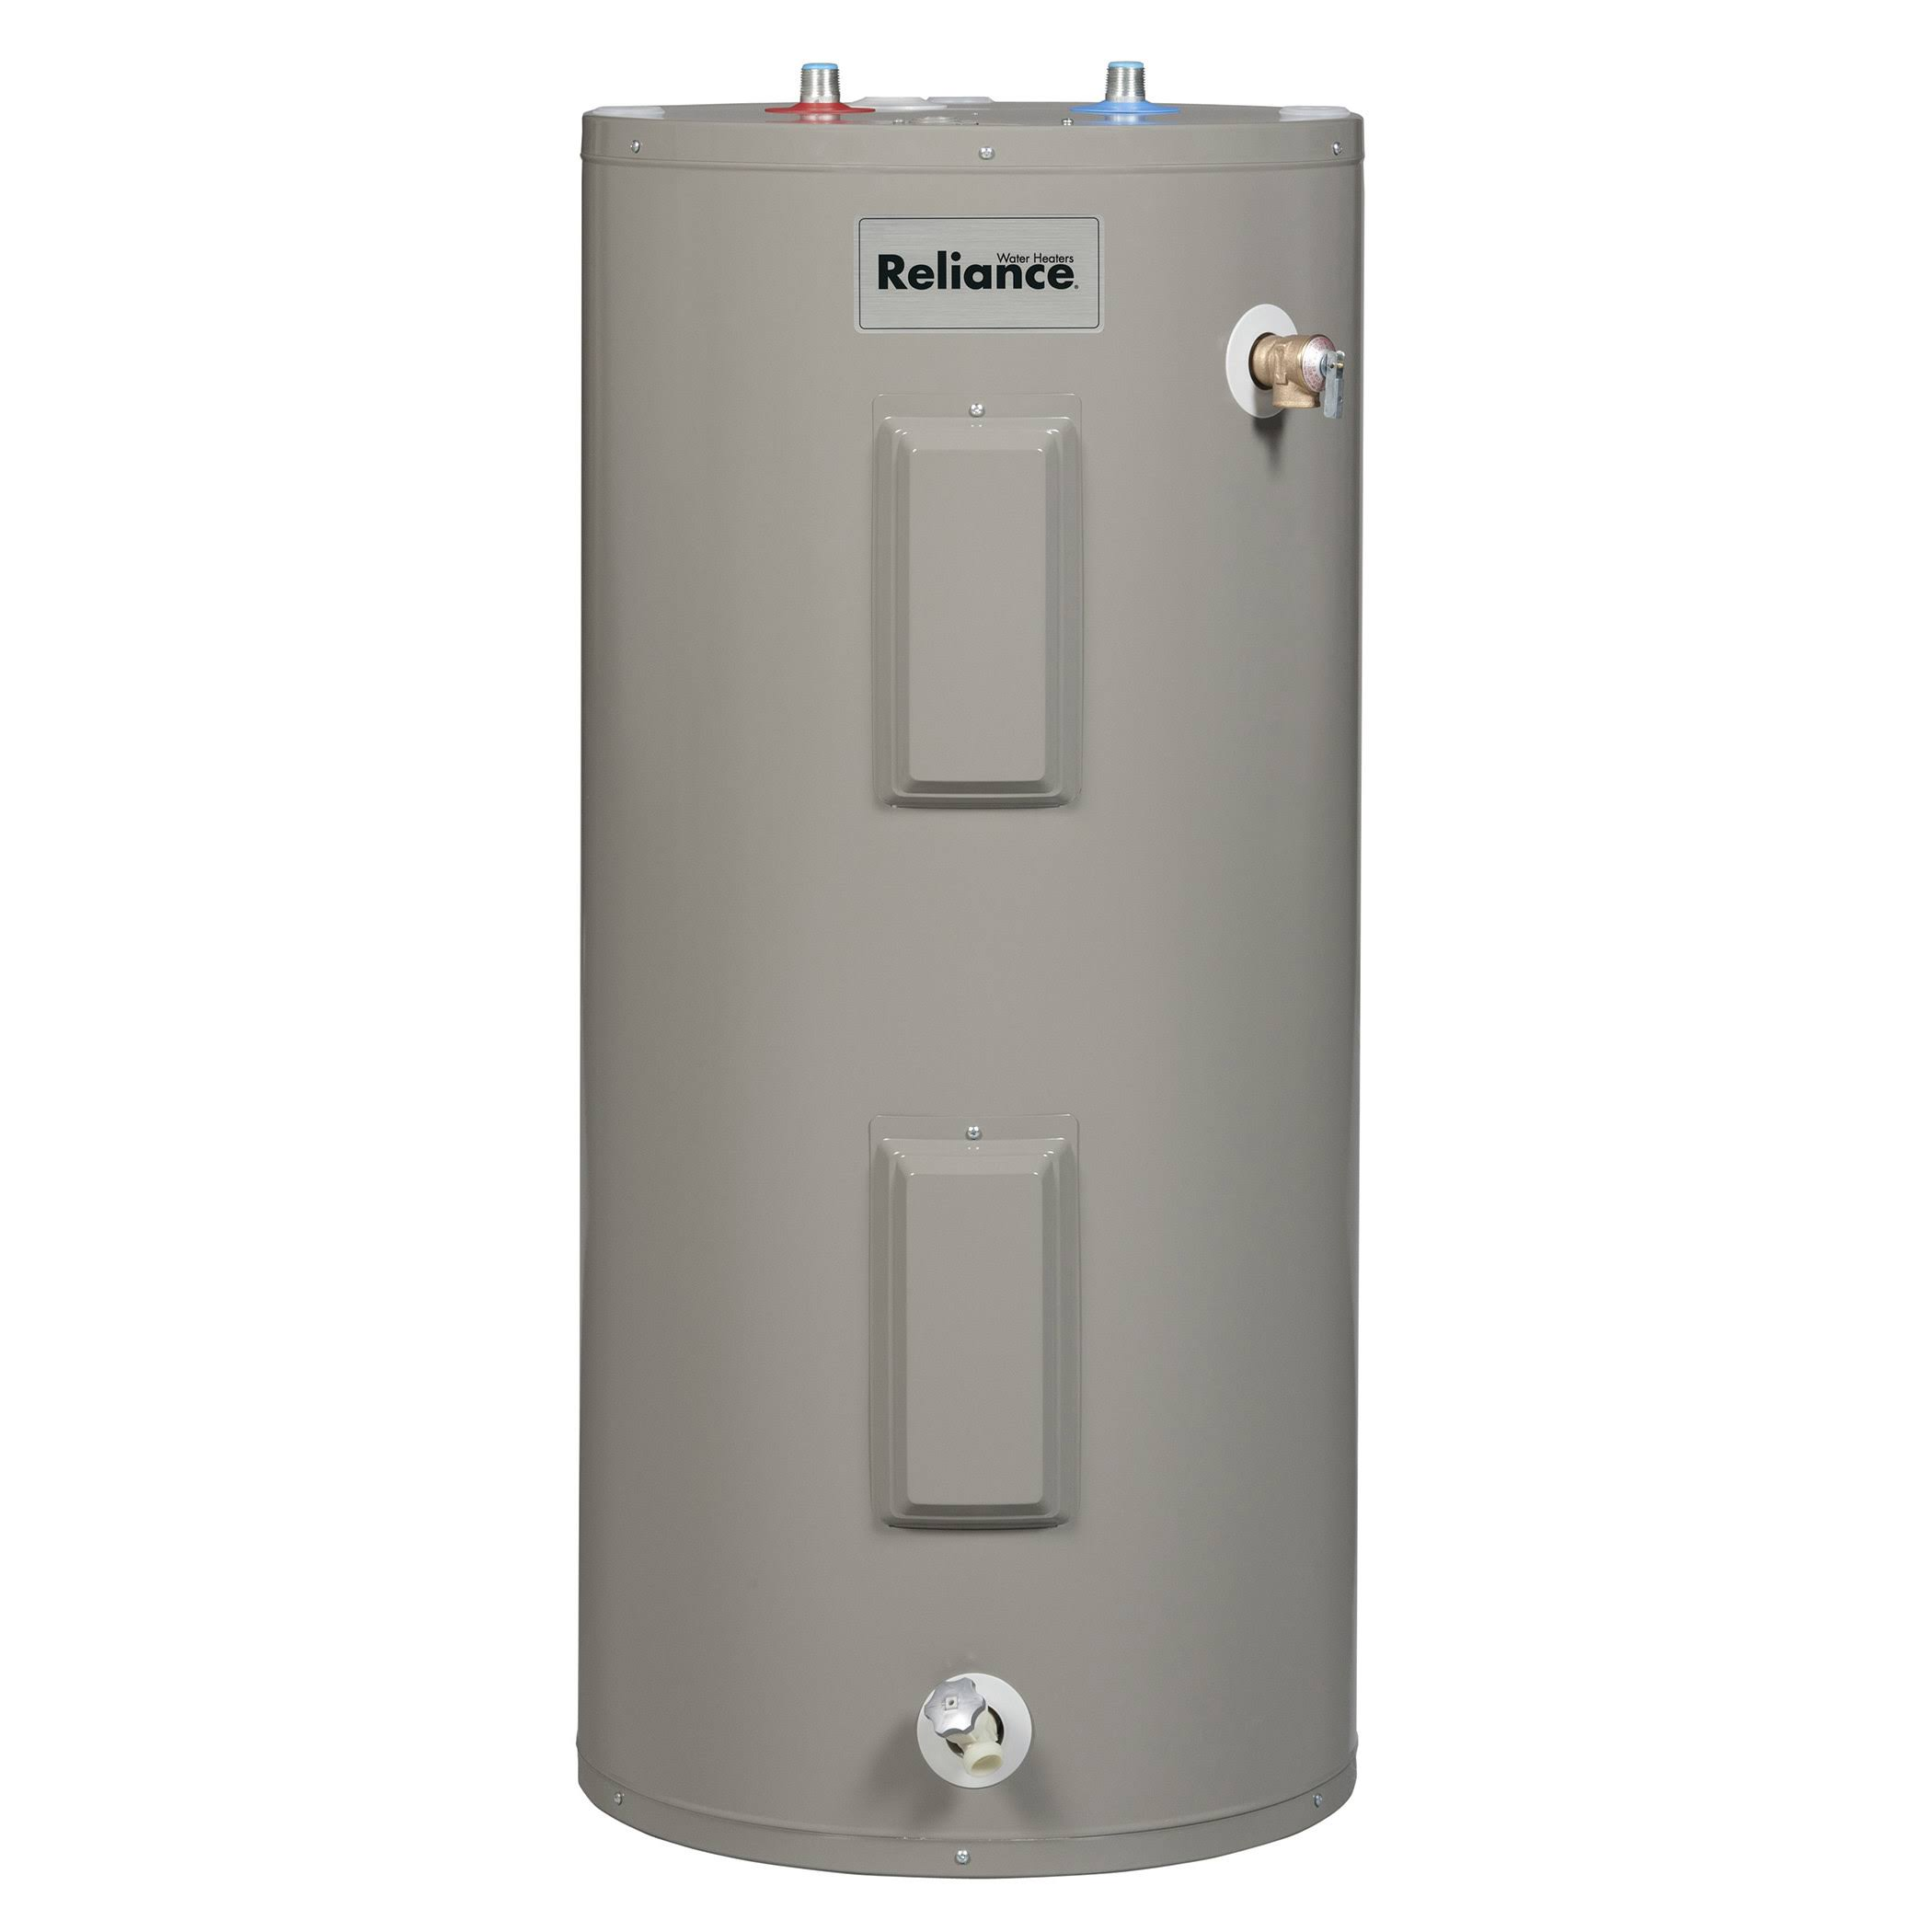 "Reliance 6-30-EORS Electric Water Heater - 39.75"", 30gal"